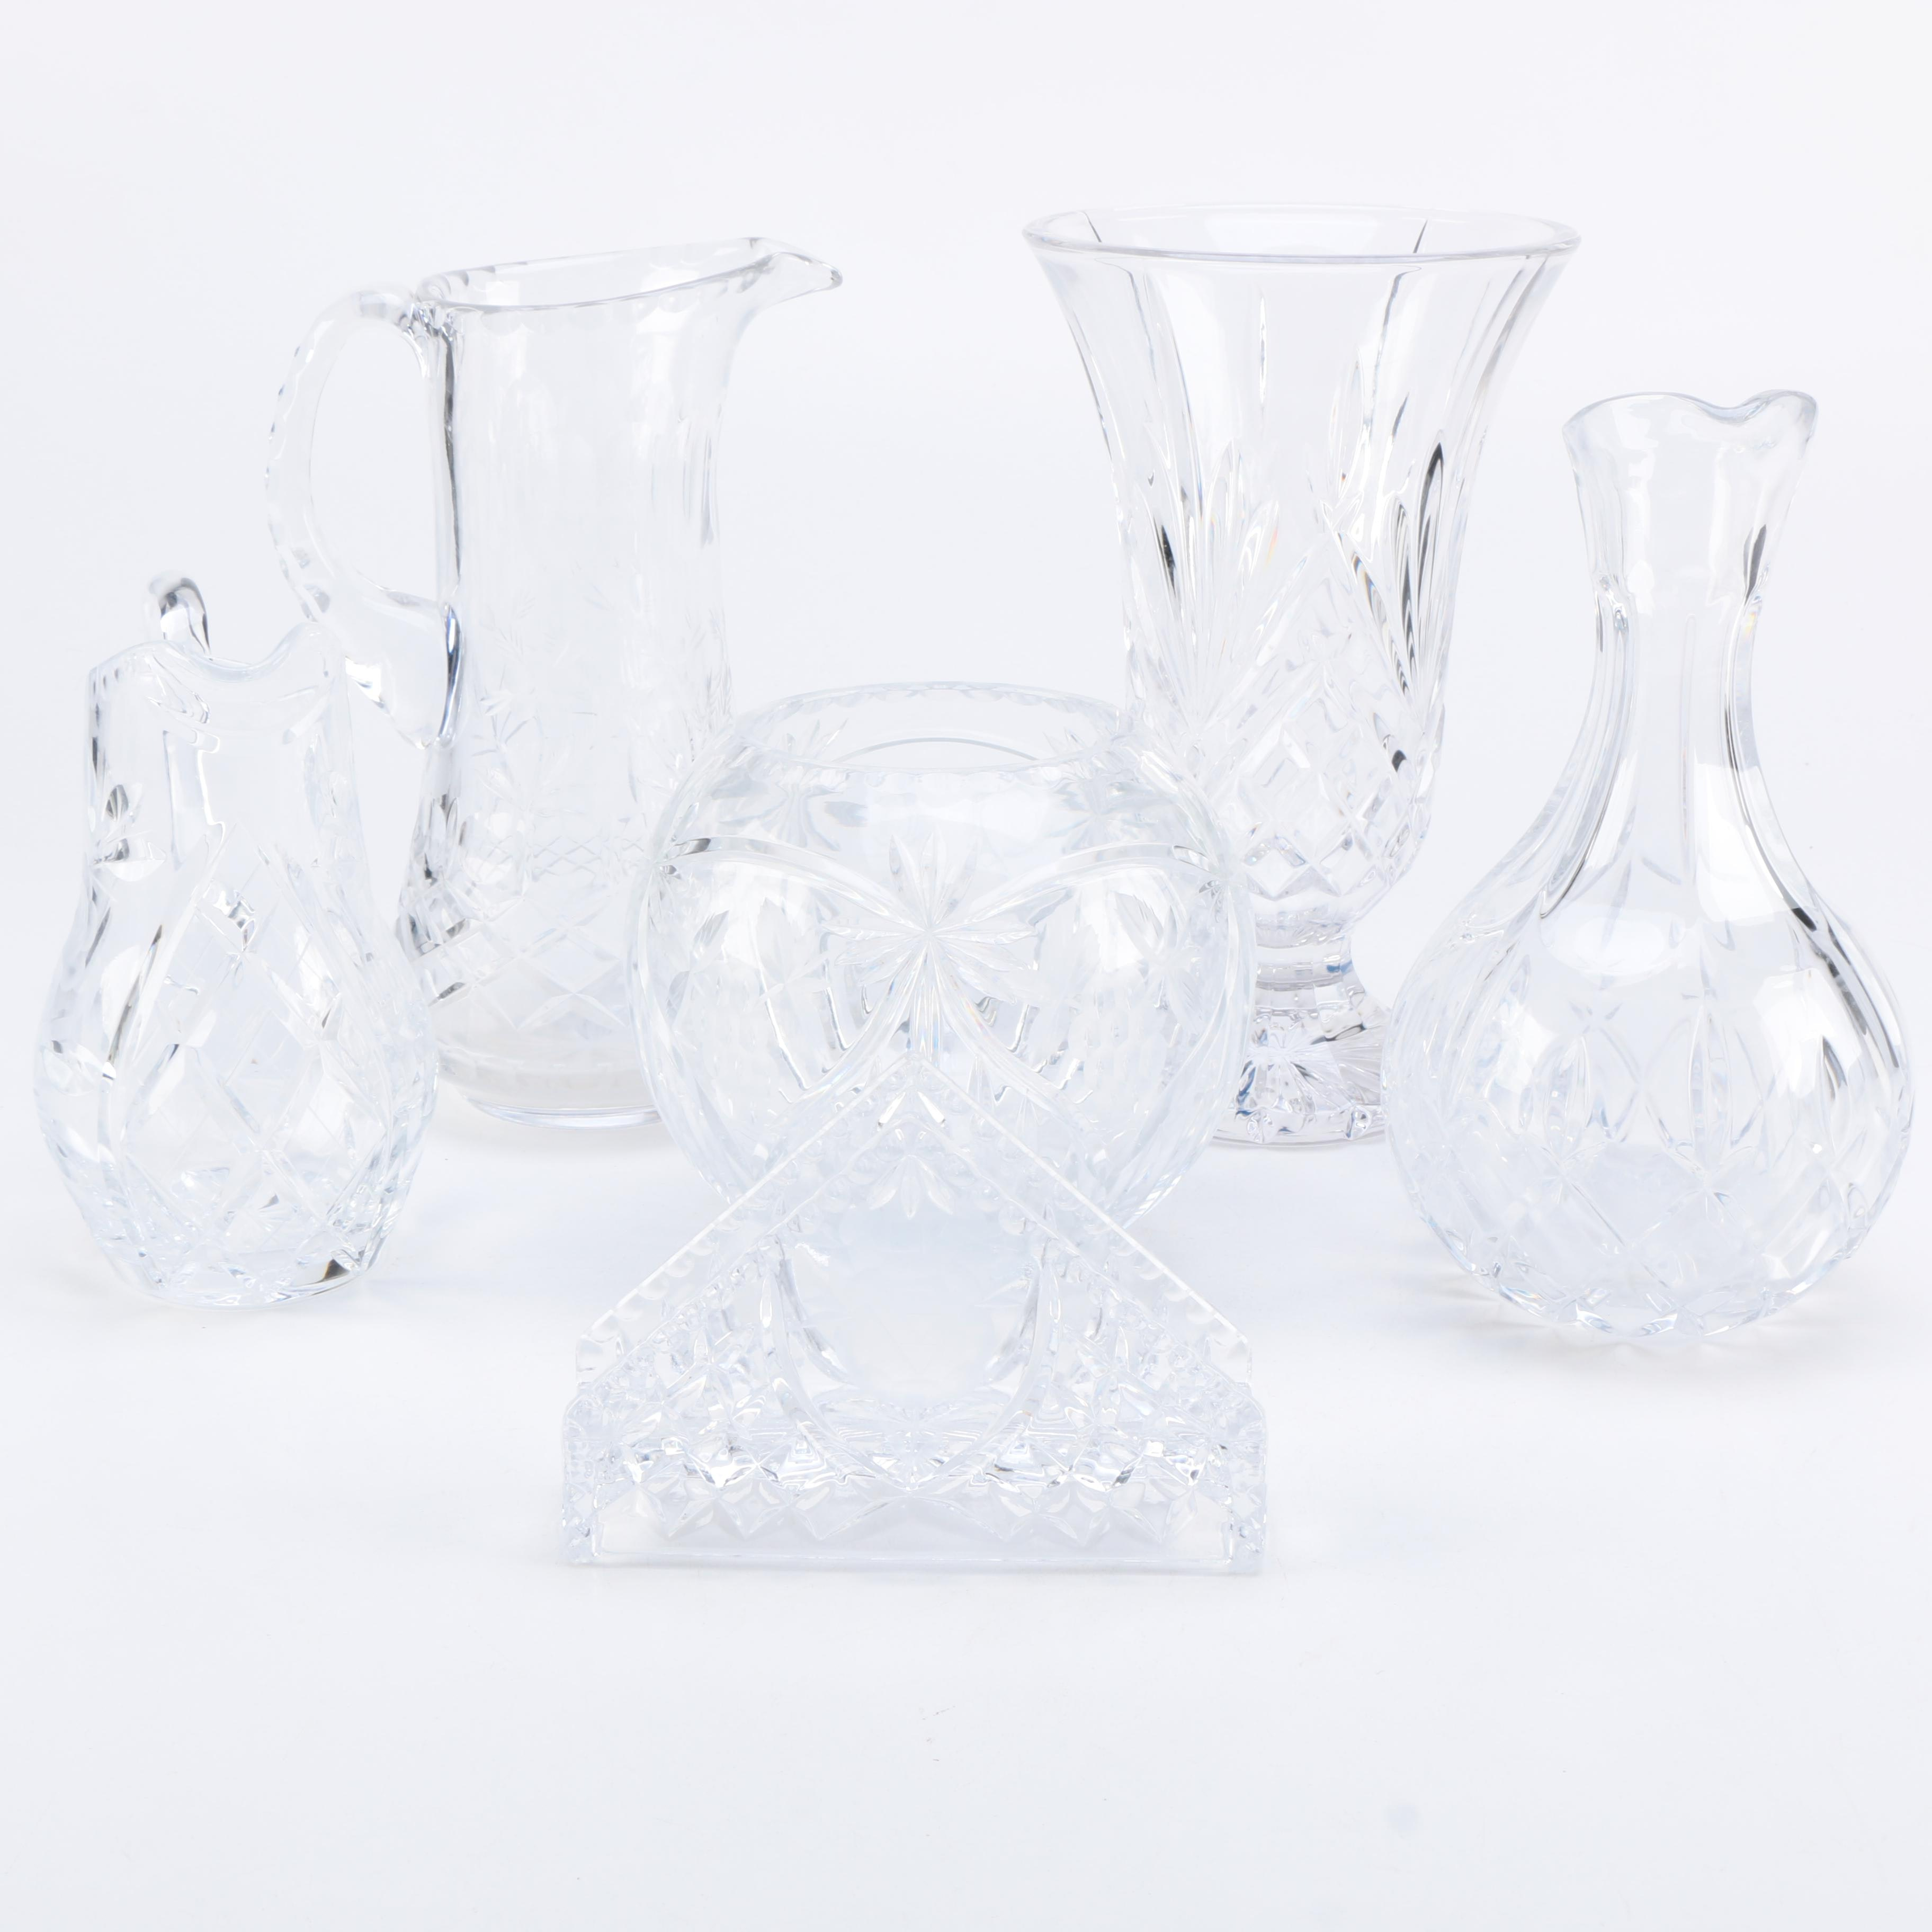 Crystal Decor and Tableware Including Marquis by Waterford